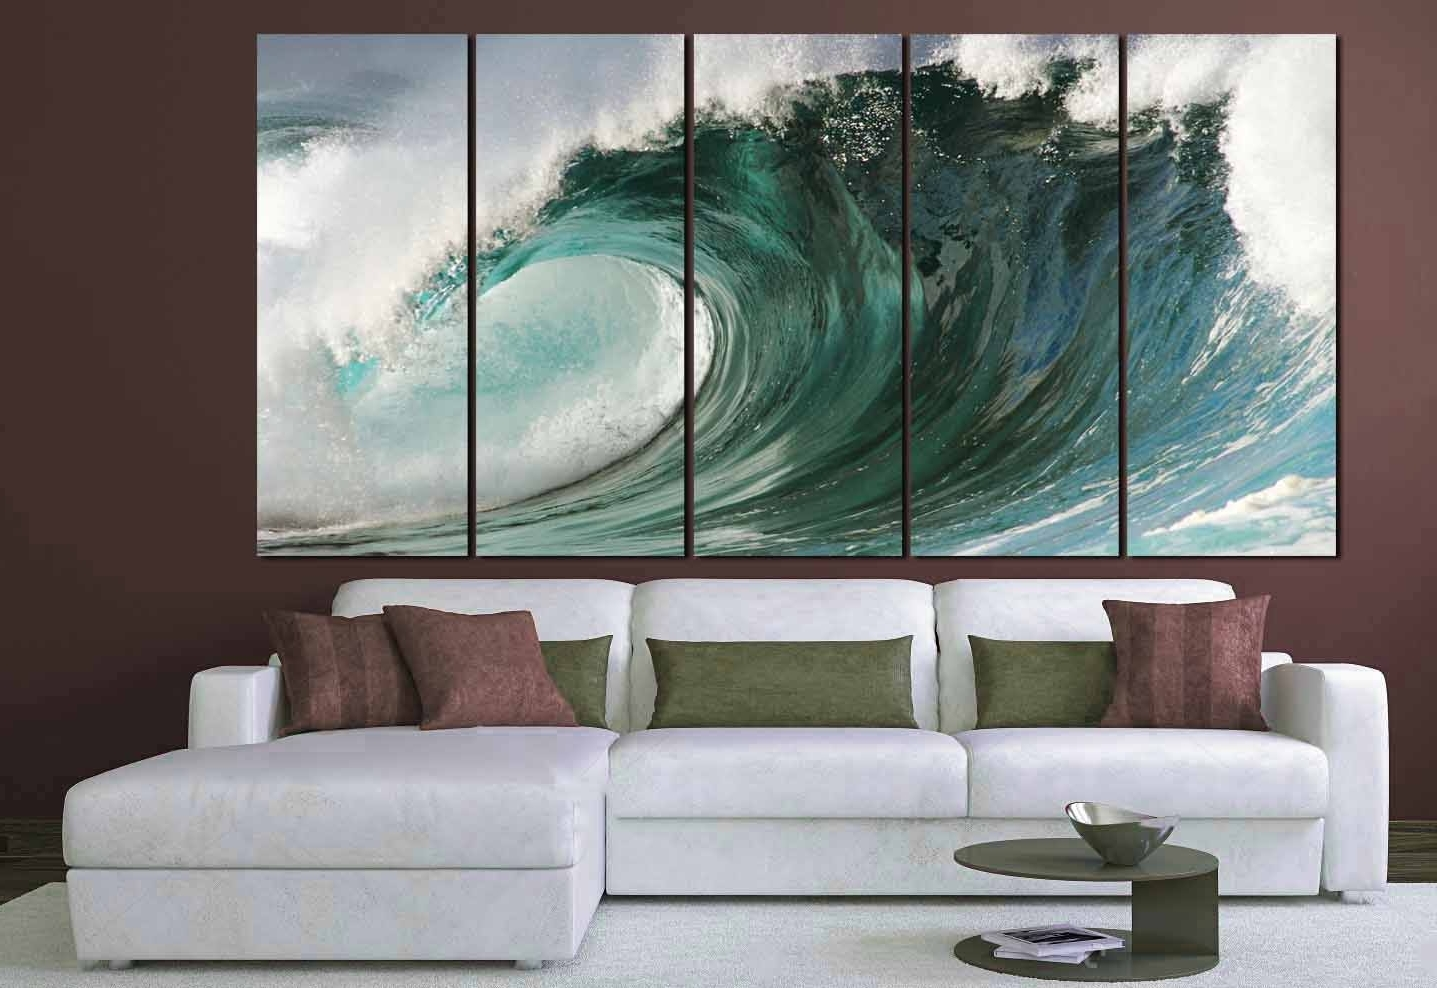 Ocean Wall Art Regarding 2017 Ocean Waves Art,large Ocean Wall Art, Ocean Waves Canvas Art,ocean (View 2 of 15)